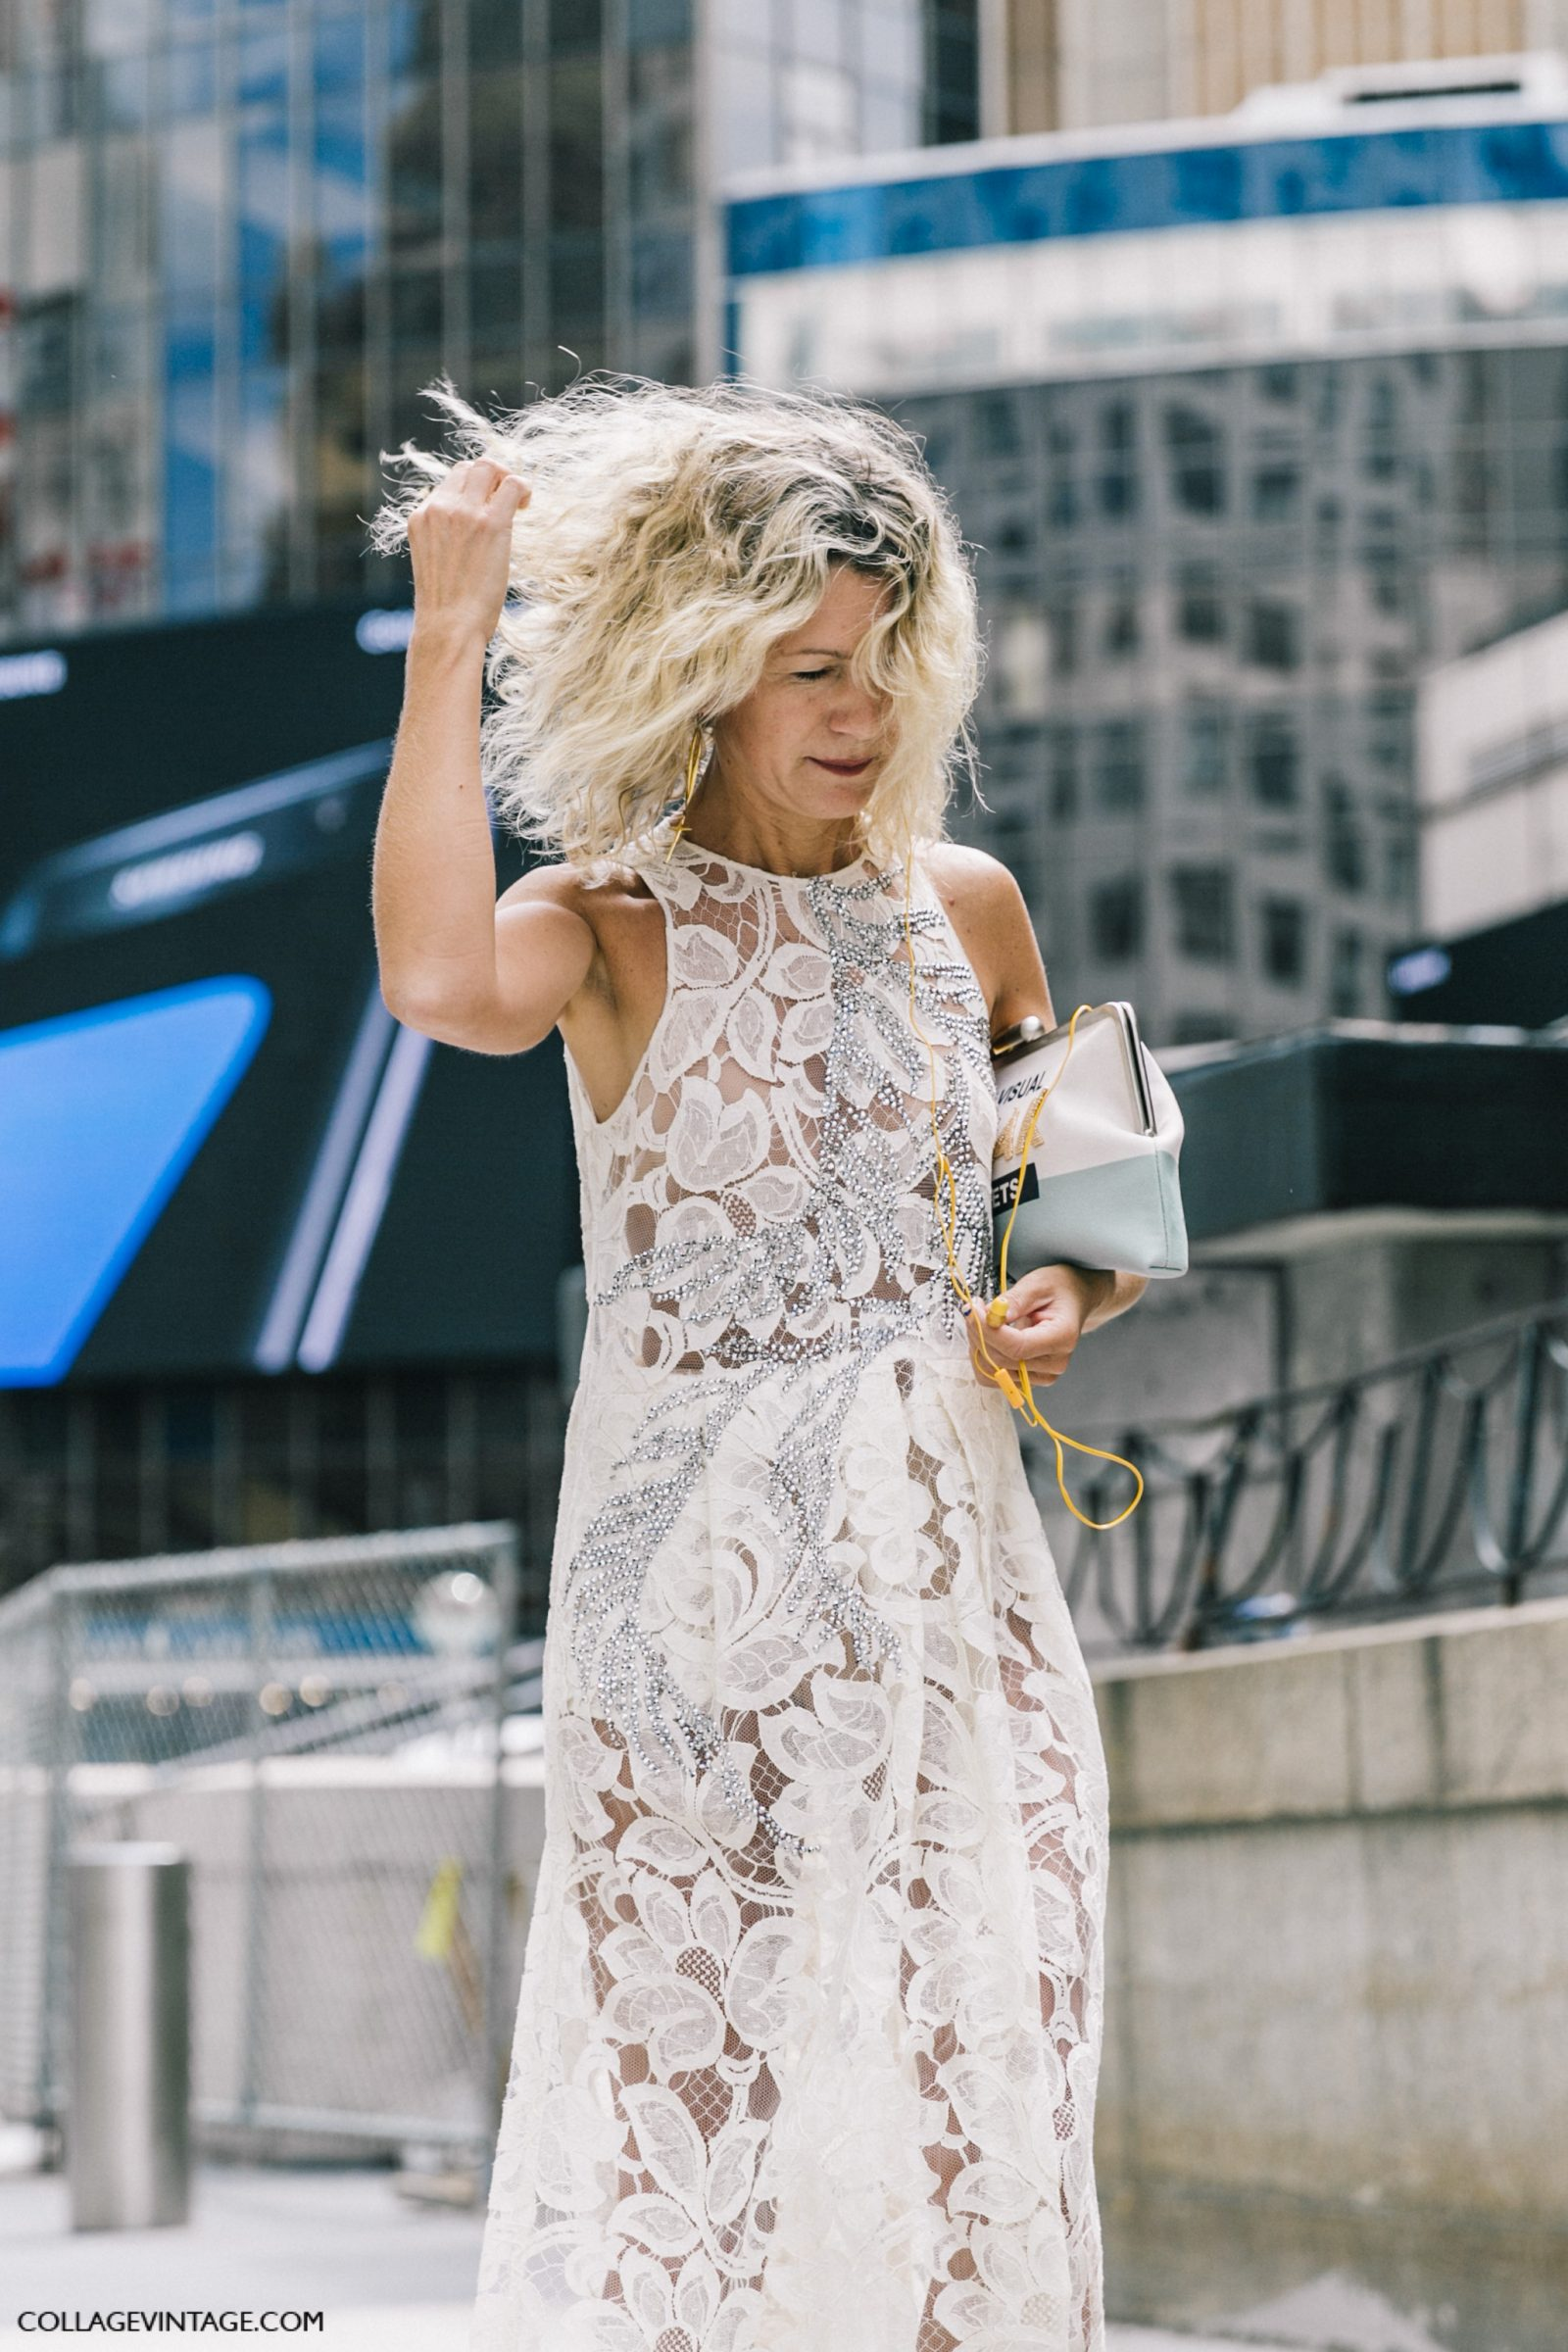 nyfw-new_york_fashion_week_ss17-street_style-outfits-collage_vintage-vintage-tome-57